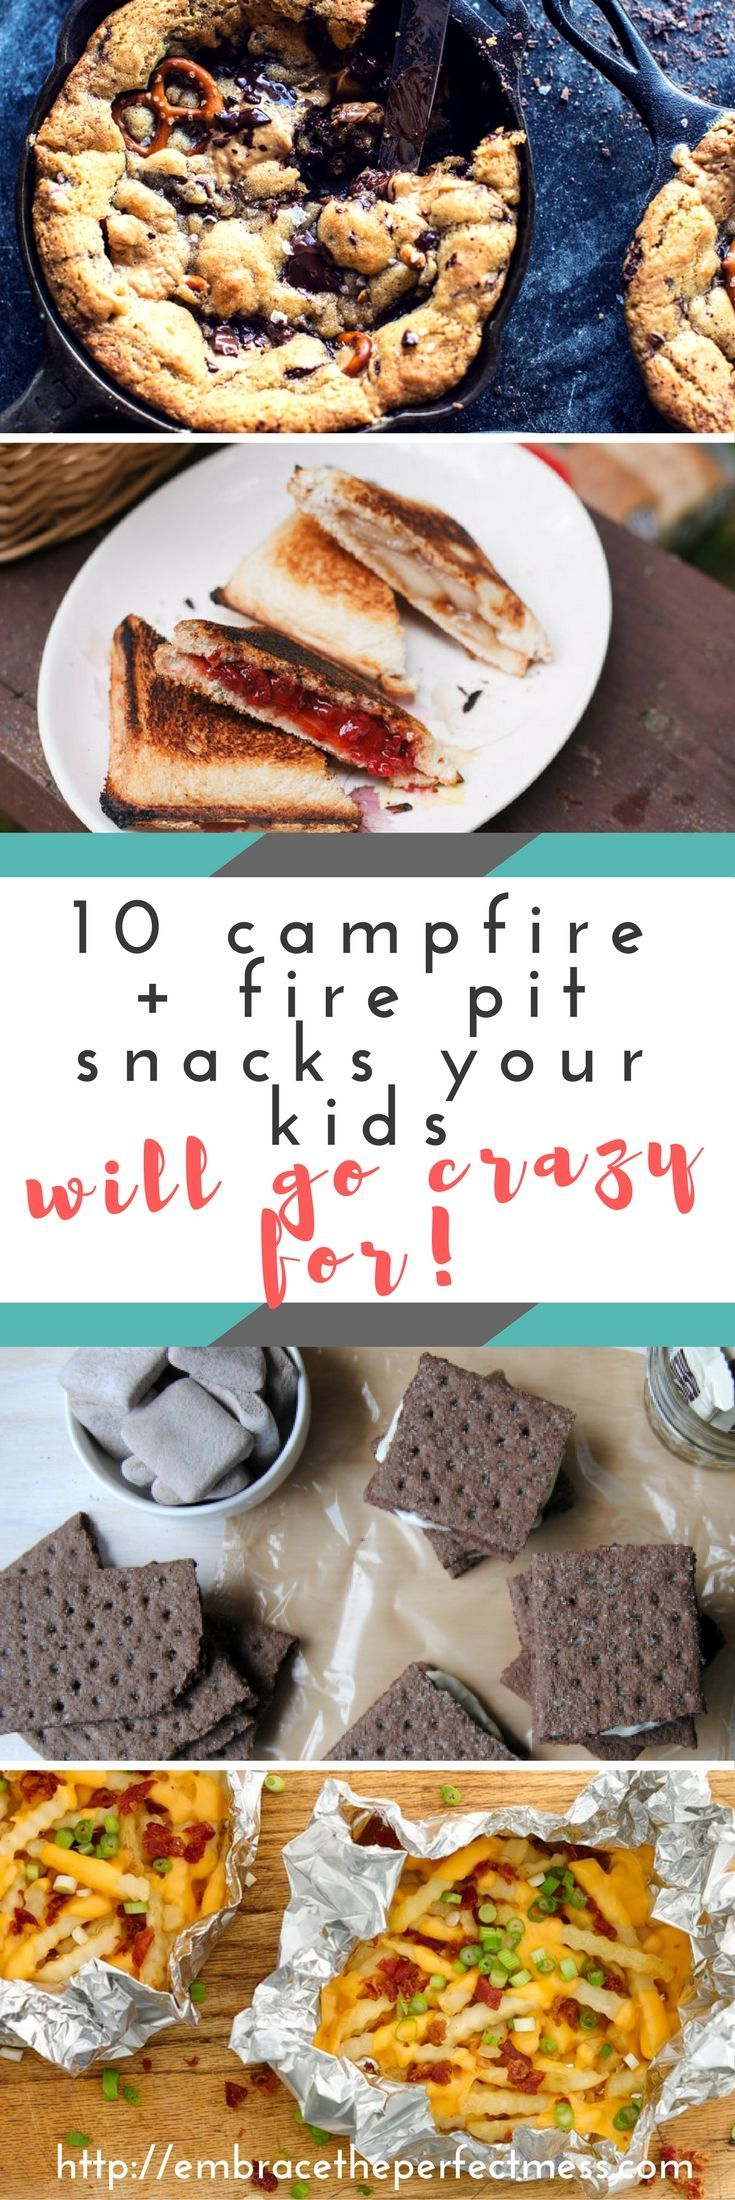 49 Best Family Travel Camping Images On Pinterest